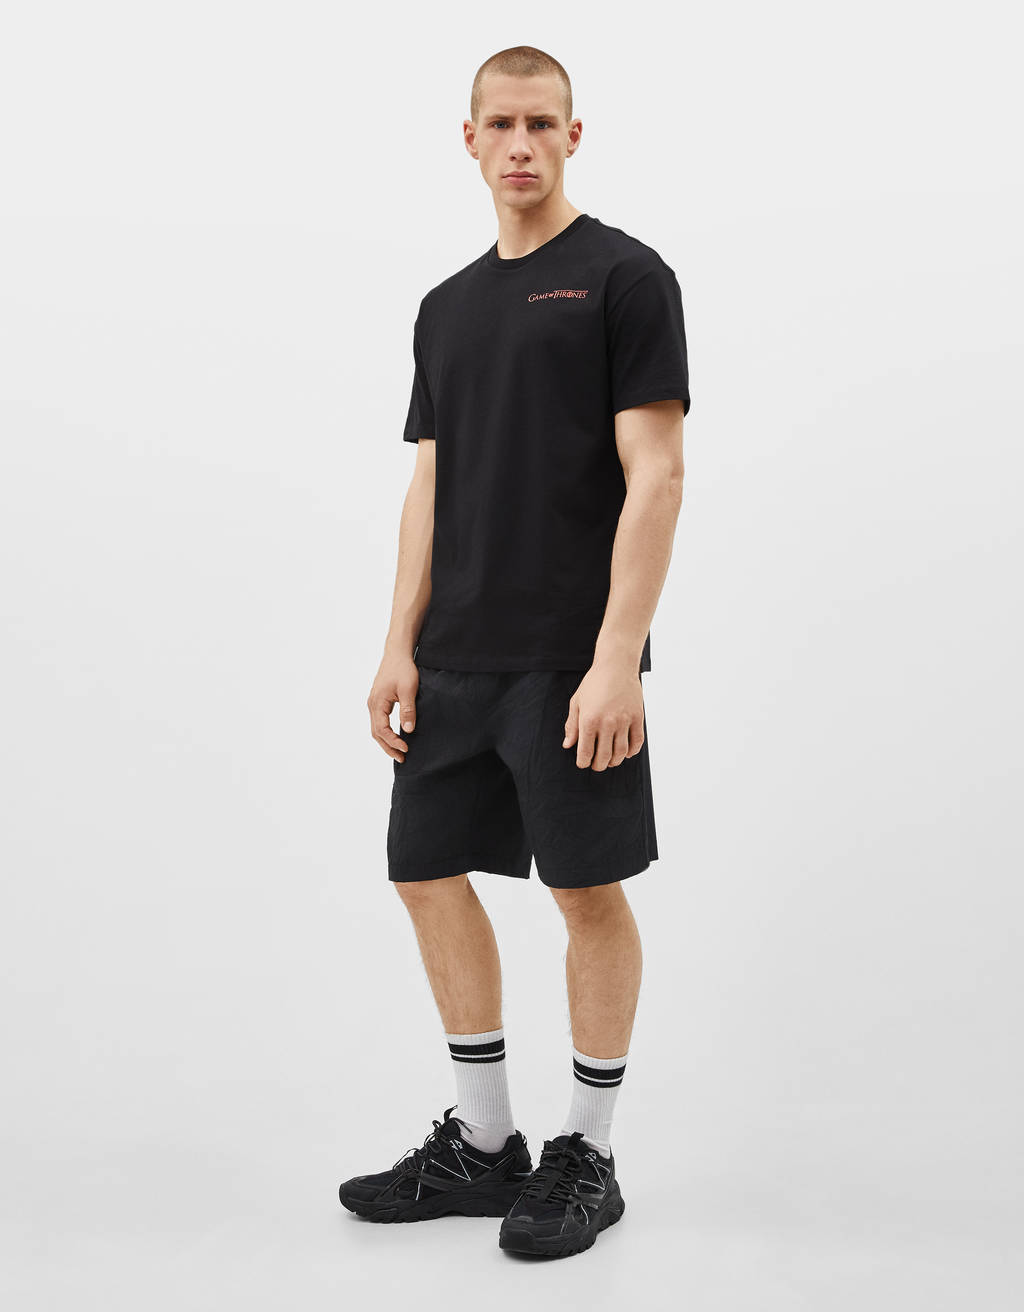 39640a96b75 Men s T-Shirts - Spring Summer 2019